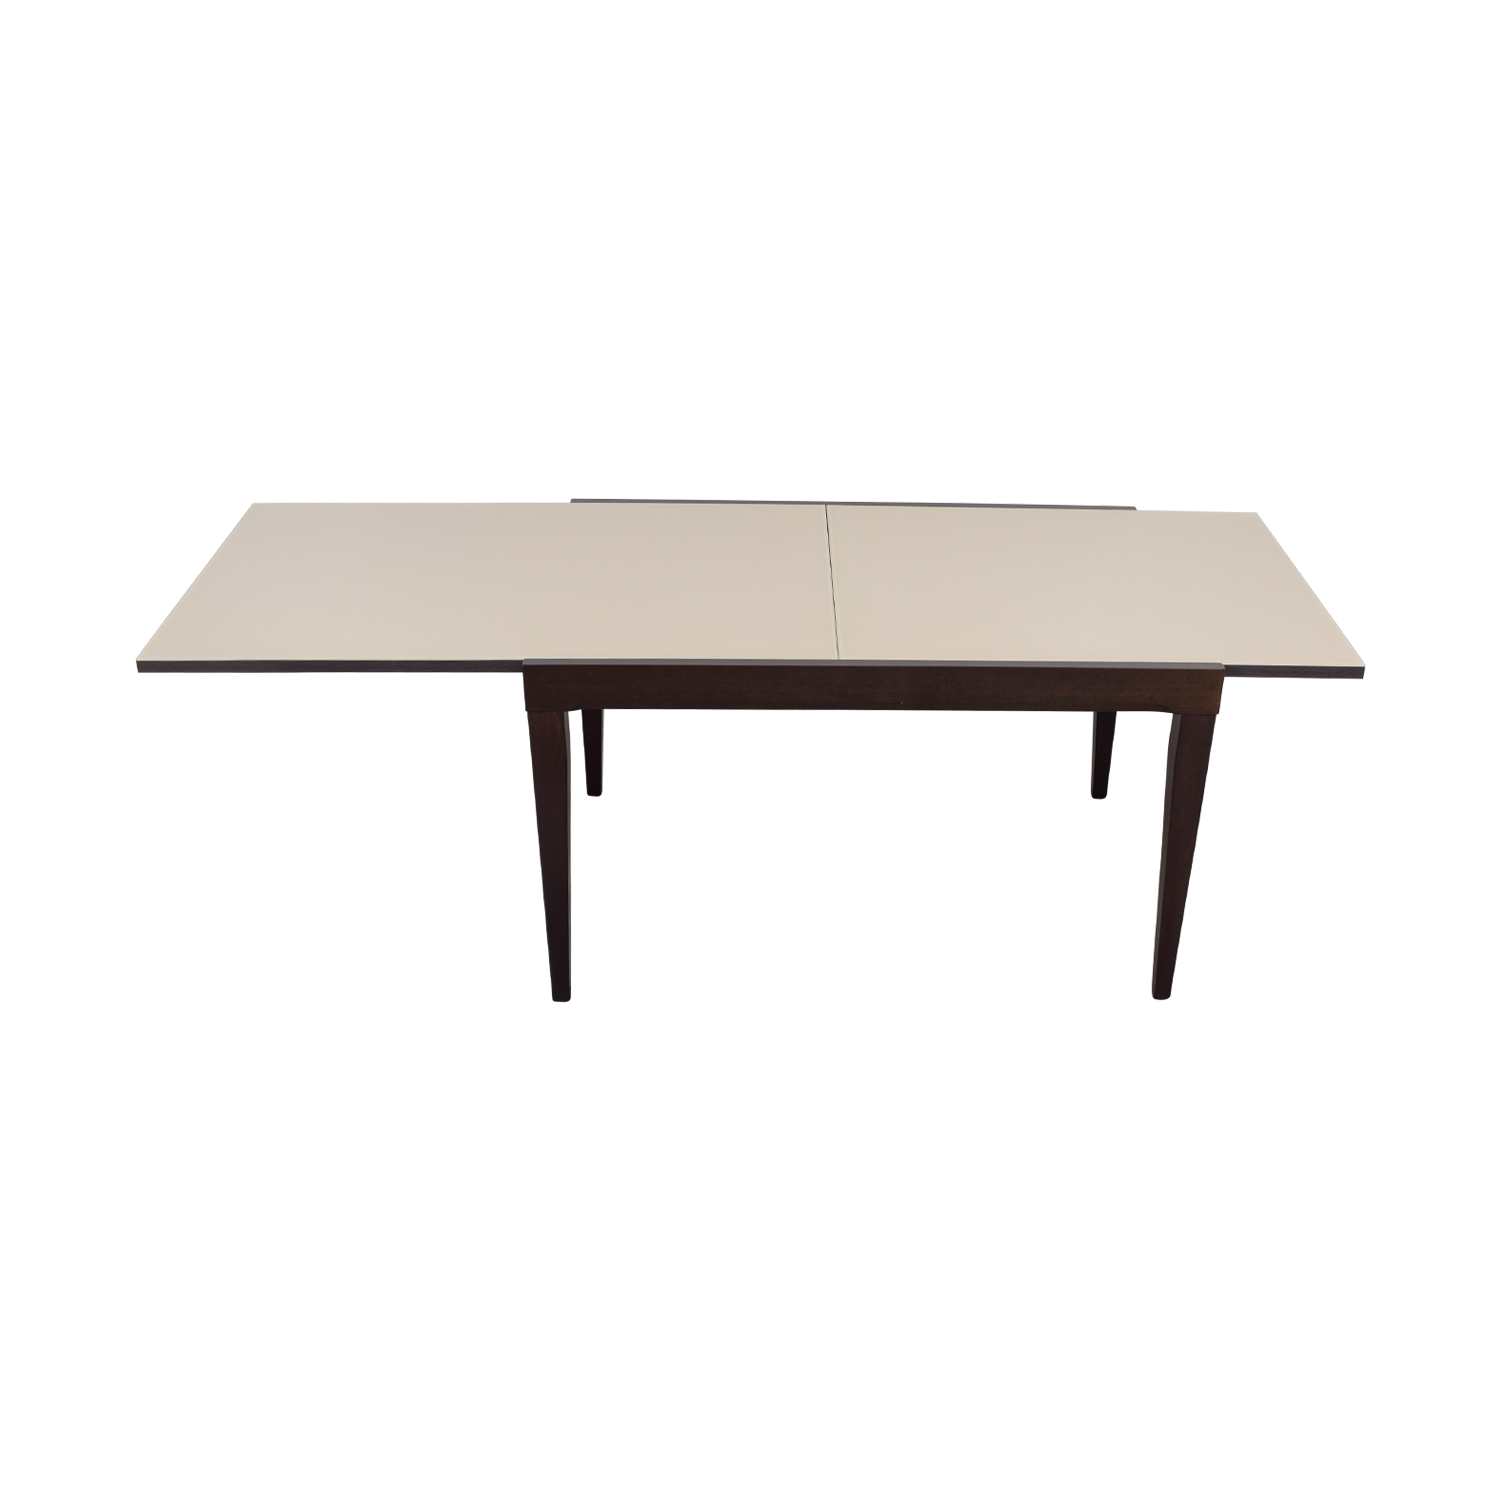 Macy's Macy's Cafe Latte Extendable Dining Table